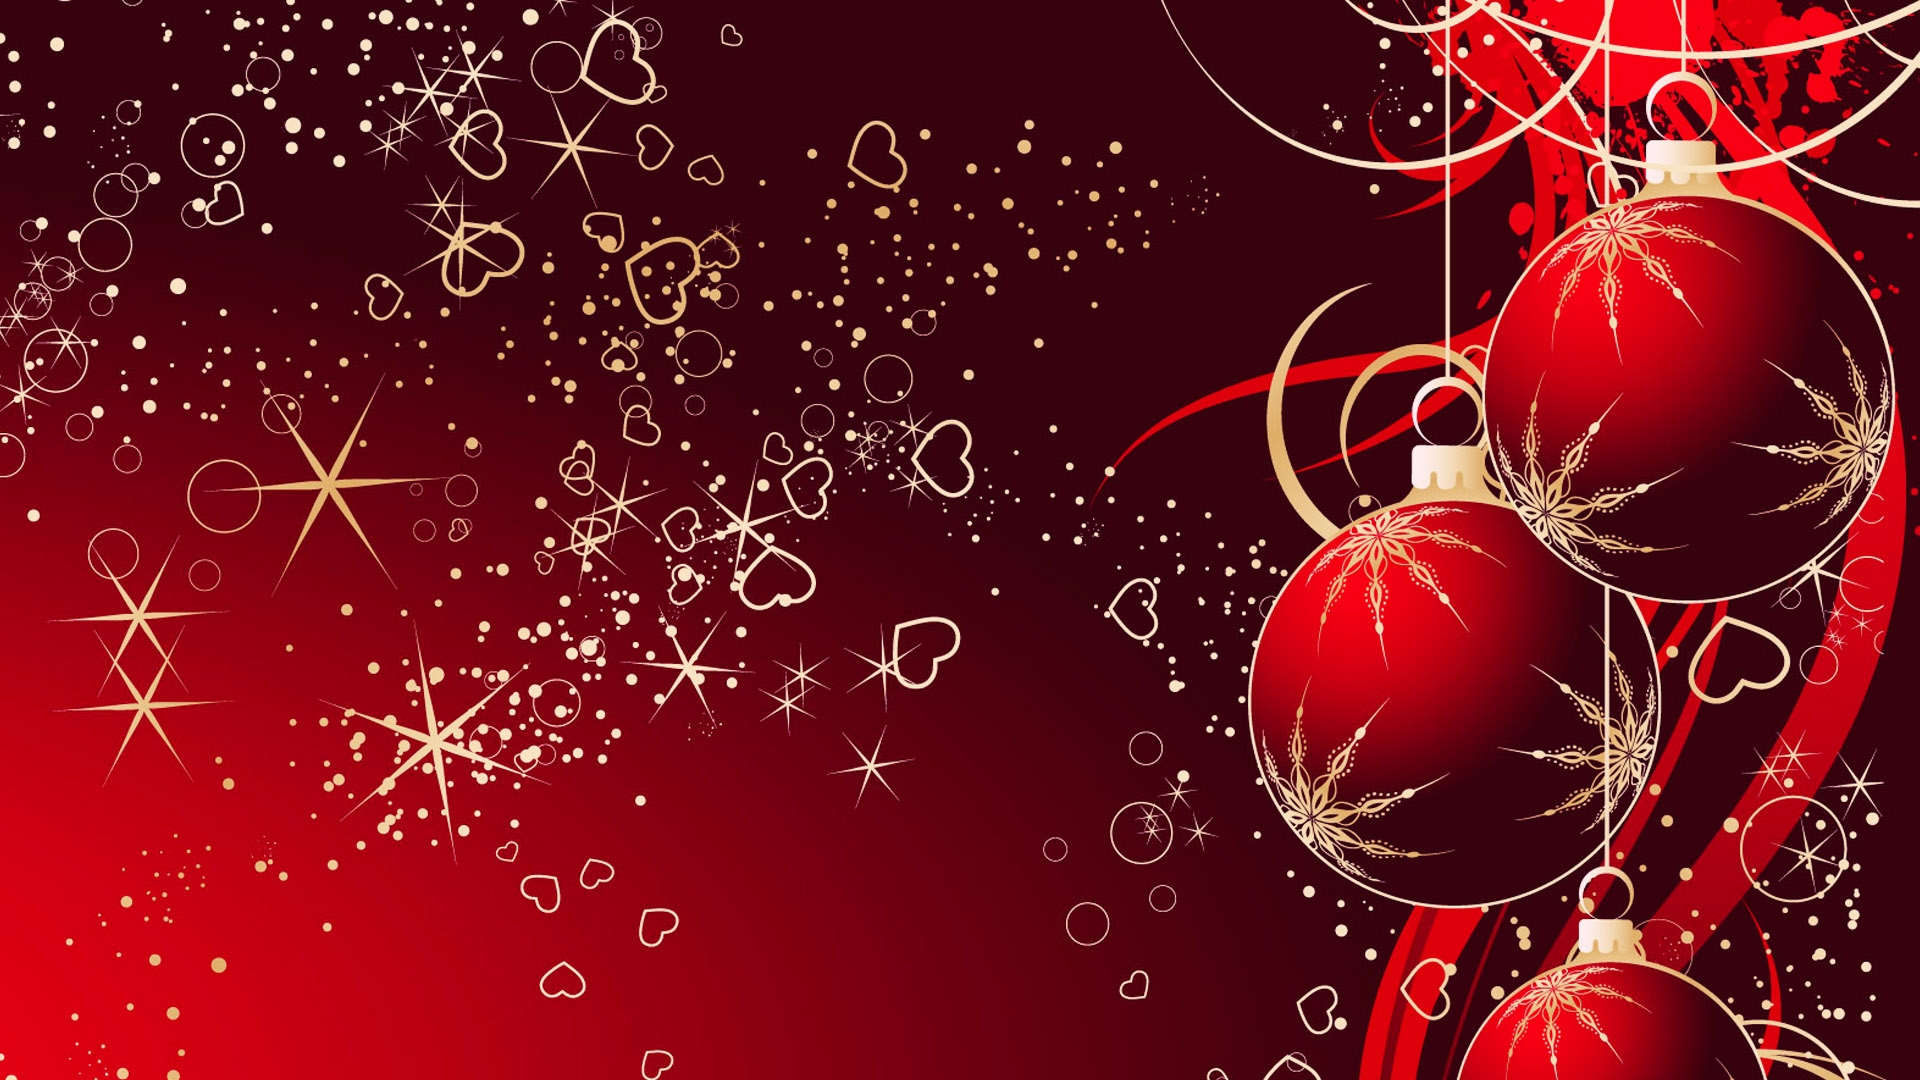 New Free Collection of HD Christmas Wallpapers  PSDreview 1920x1080